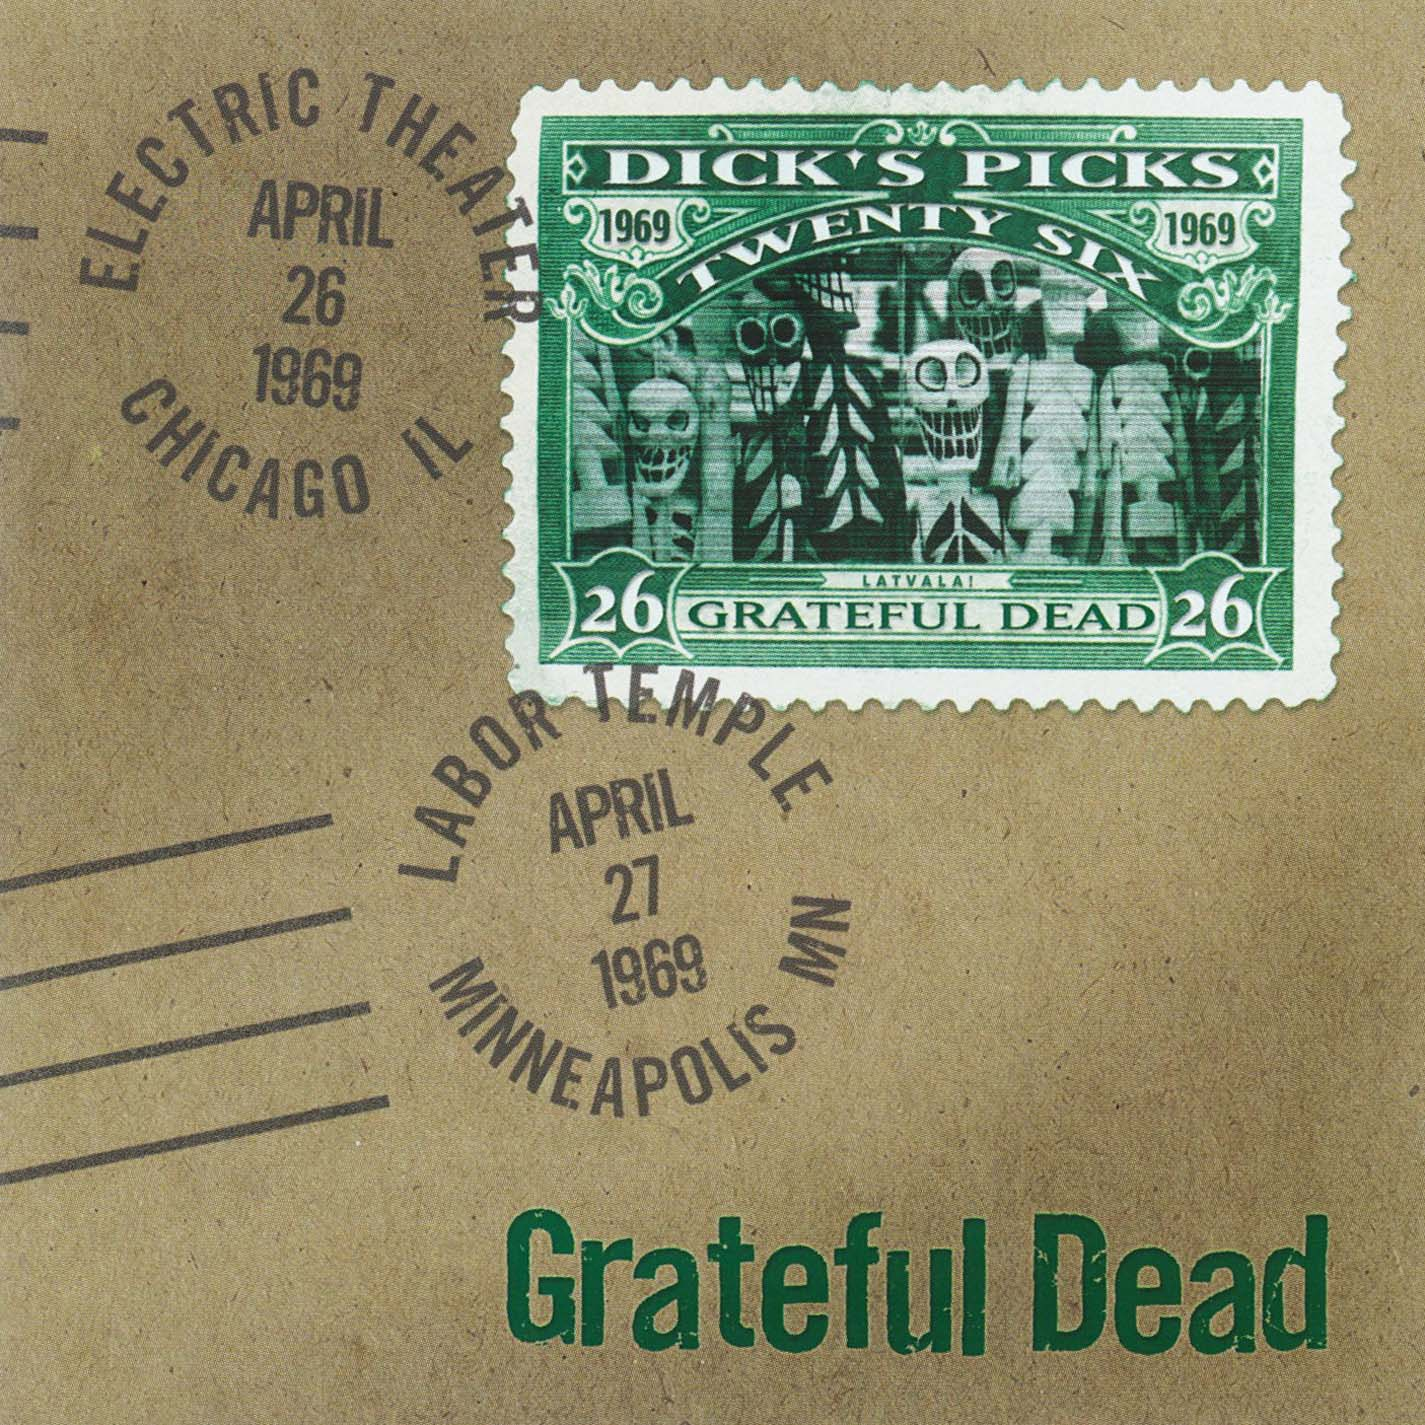 Grateful Dead Dick's Picks 26 album cover artwork